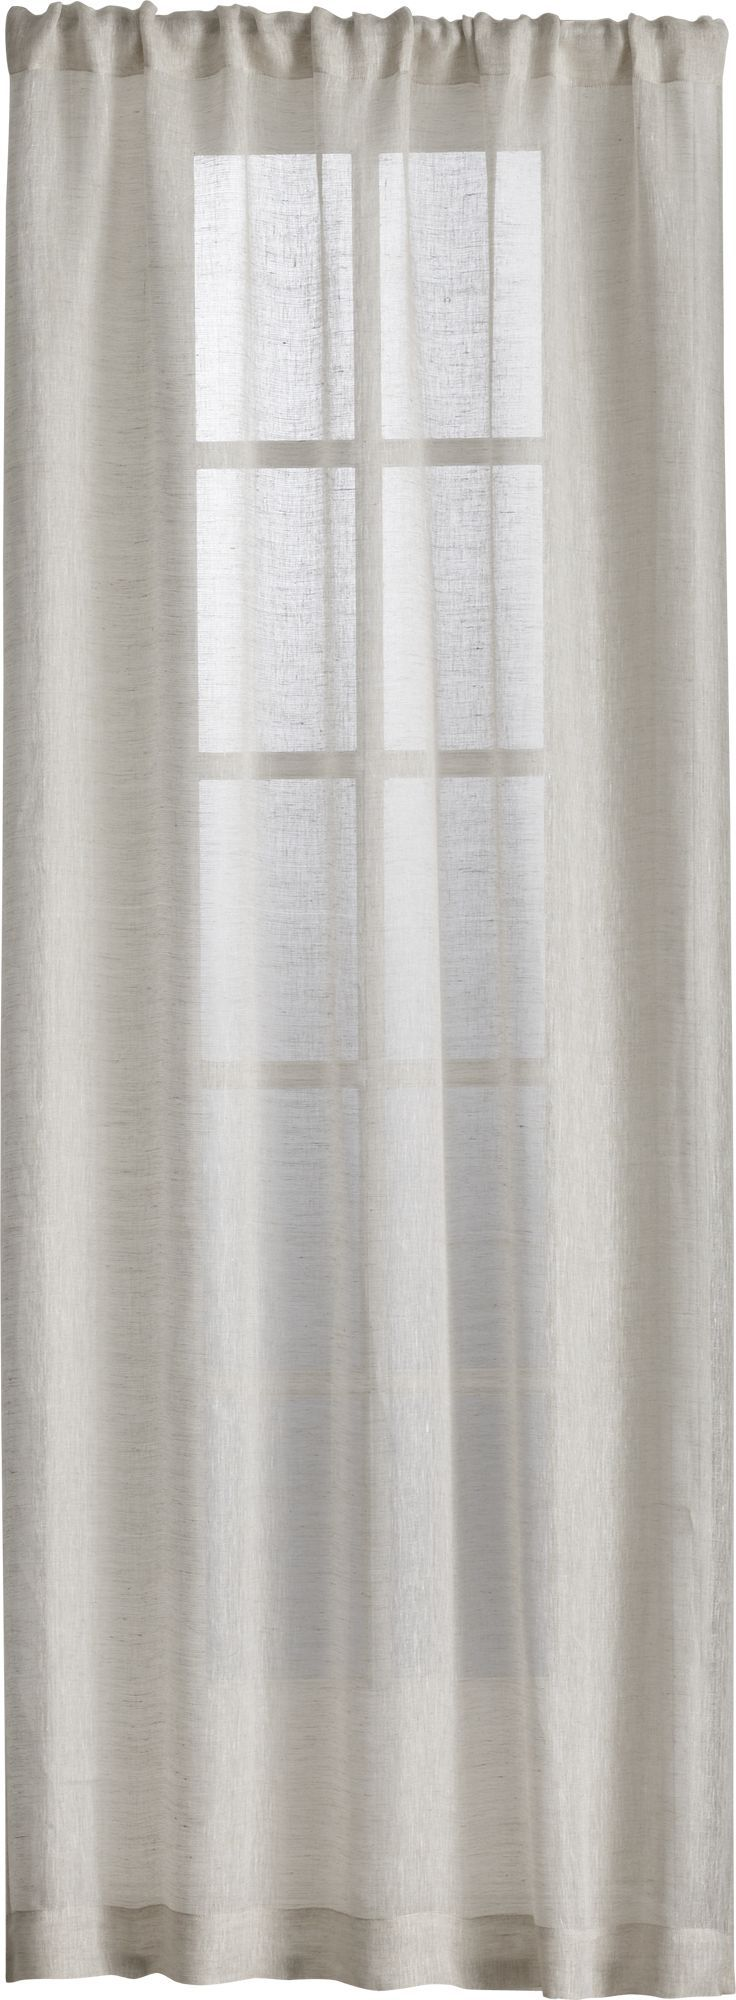 Natural linen sheer 100x108 curtain panel in curtains crate and